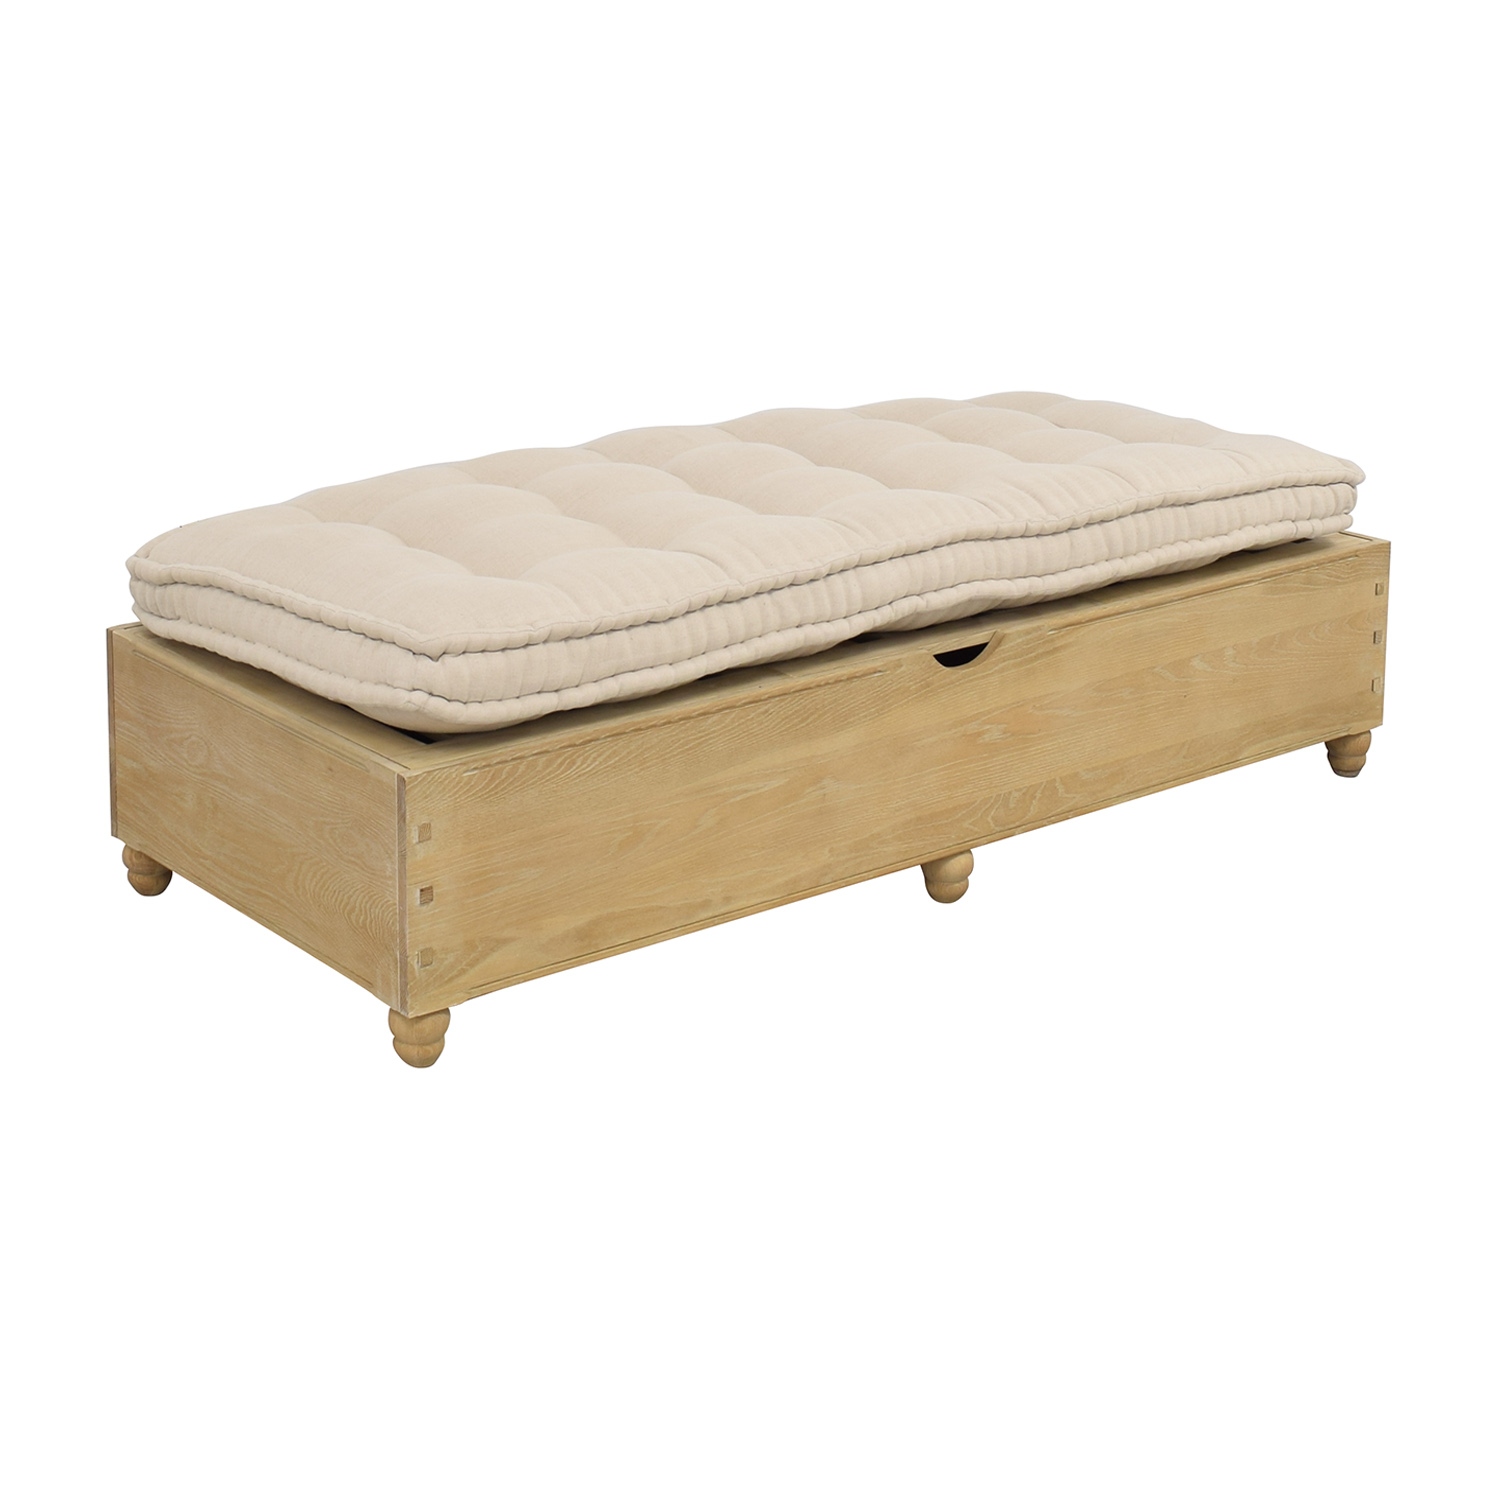 Loaf Loaf Jeepers Twin Daybed with Storage brown & off white